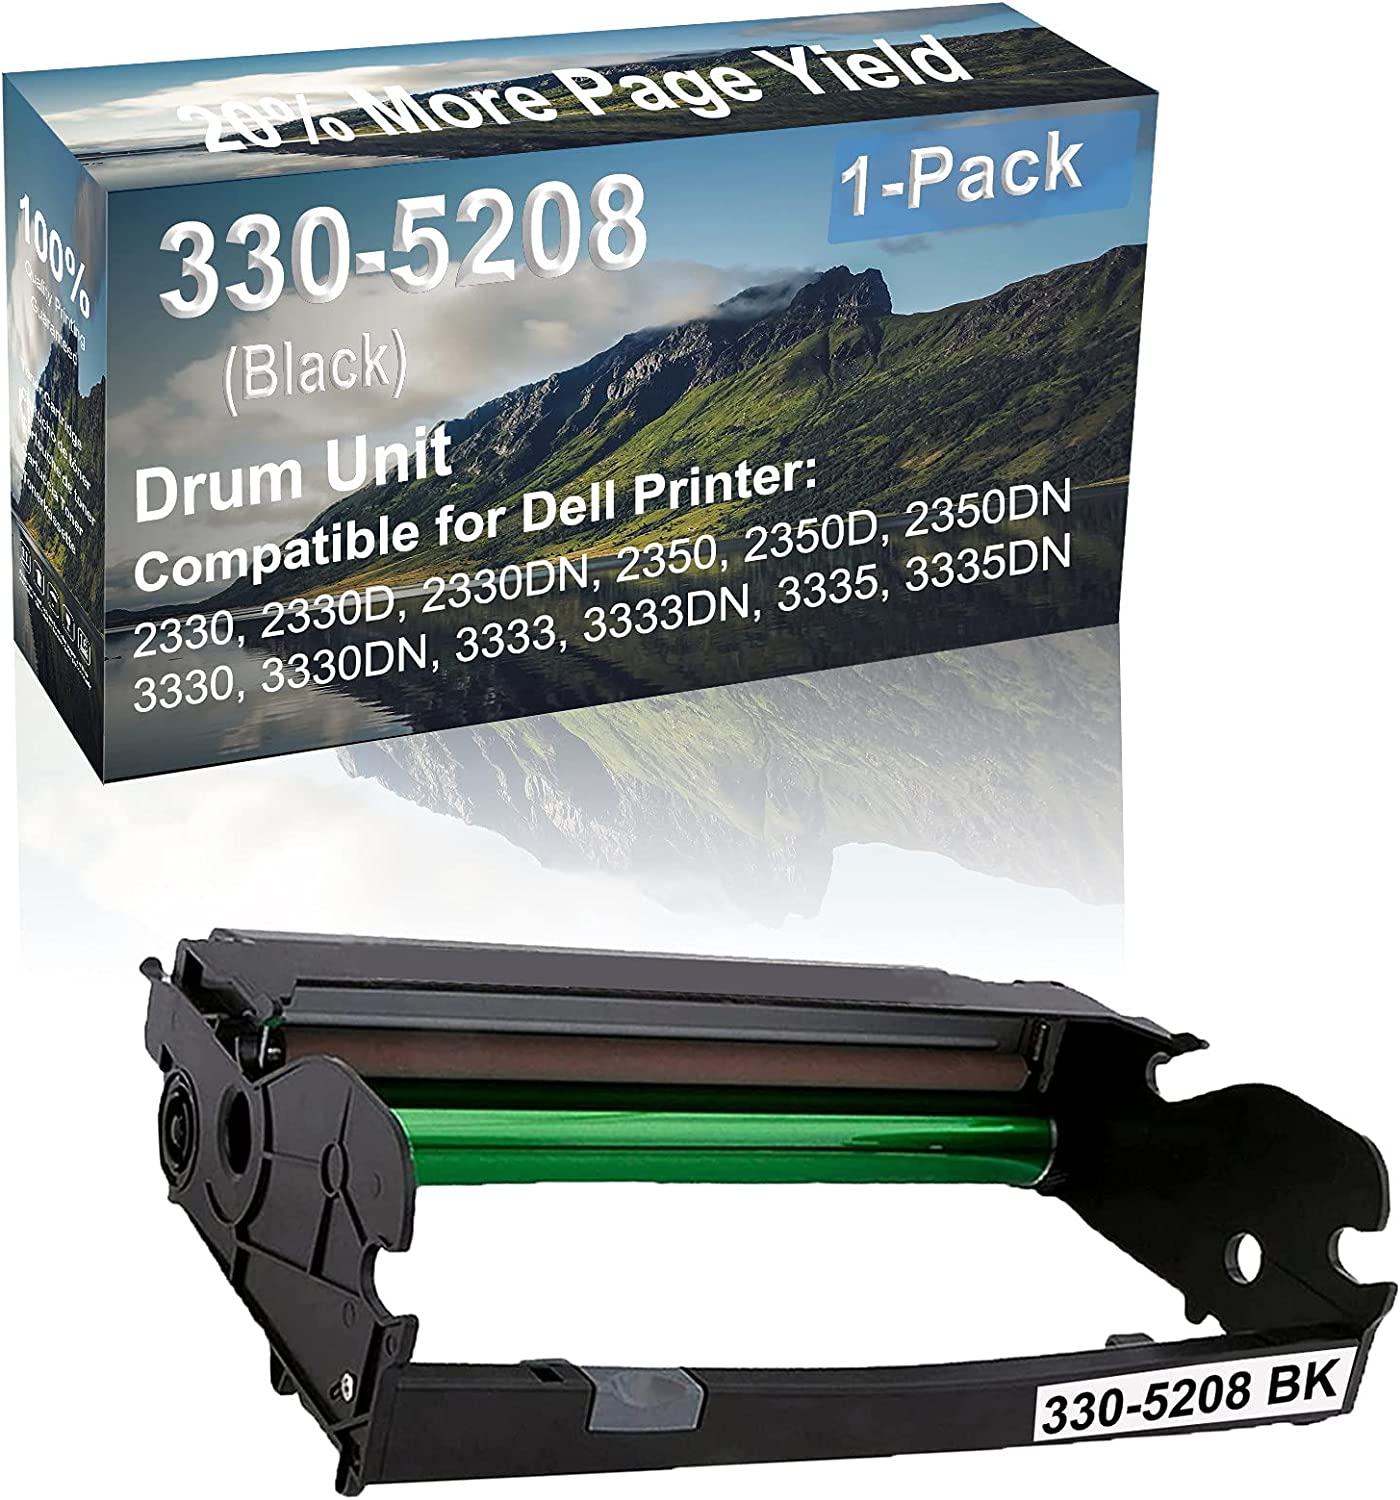 1-Pack Compatible 330-5208 Drum Kit use for Dell 2330, 2330D, 2330DN, 2350 Printer (Black)